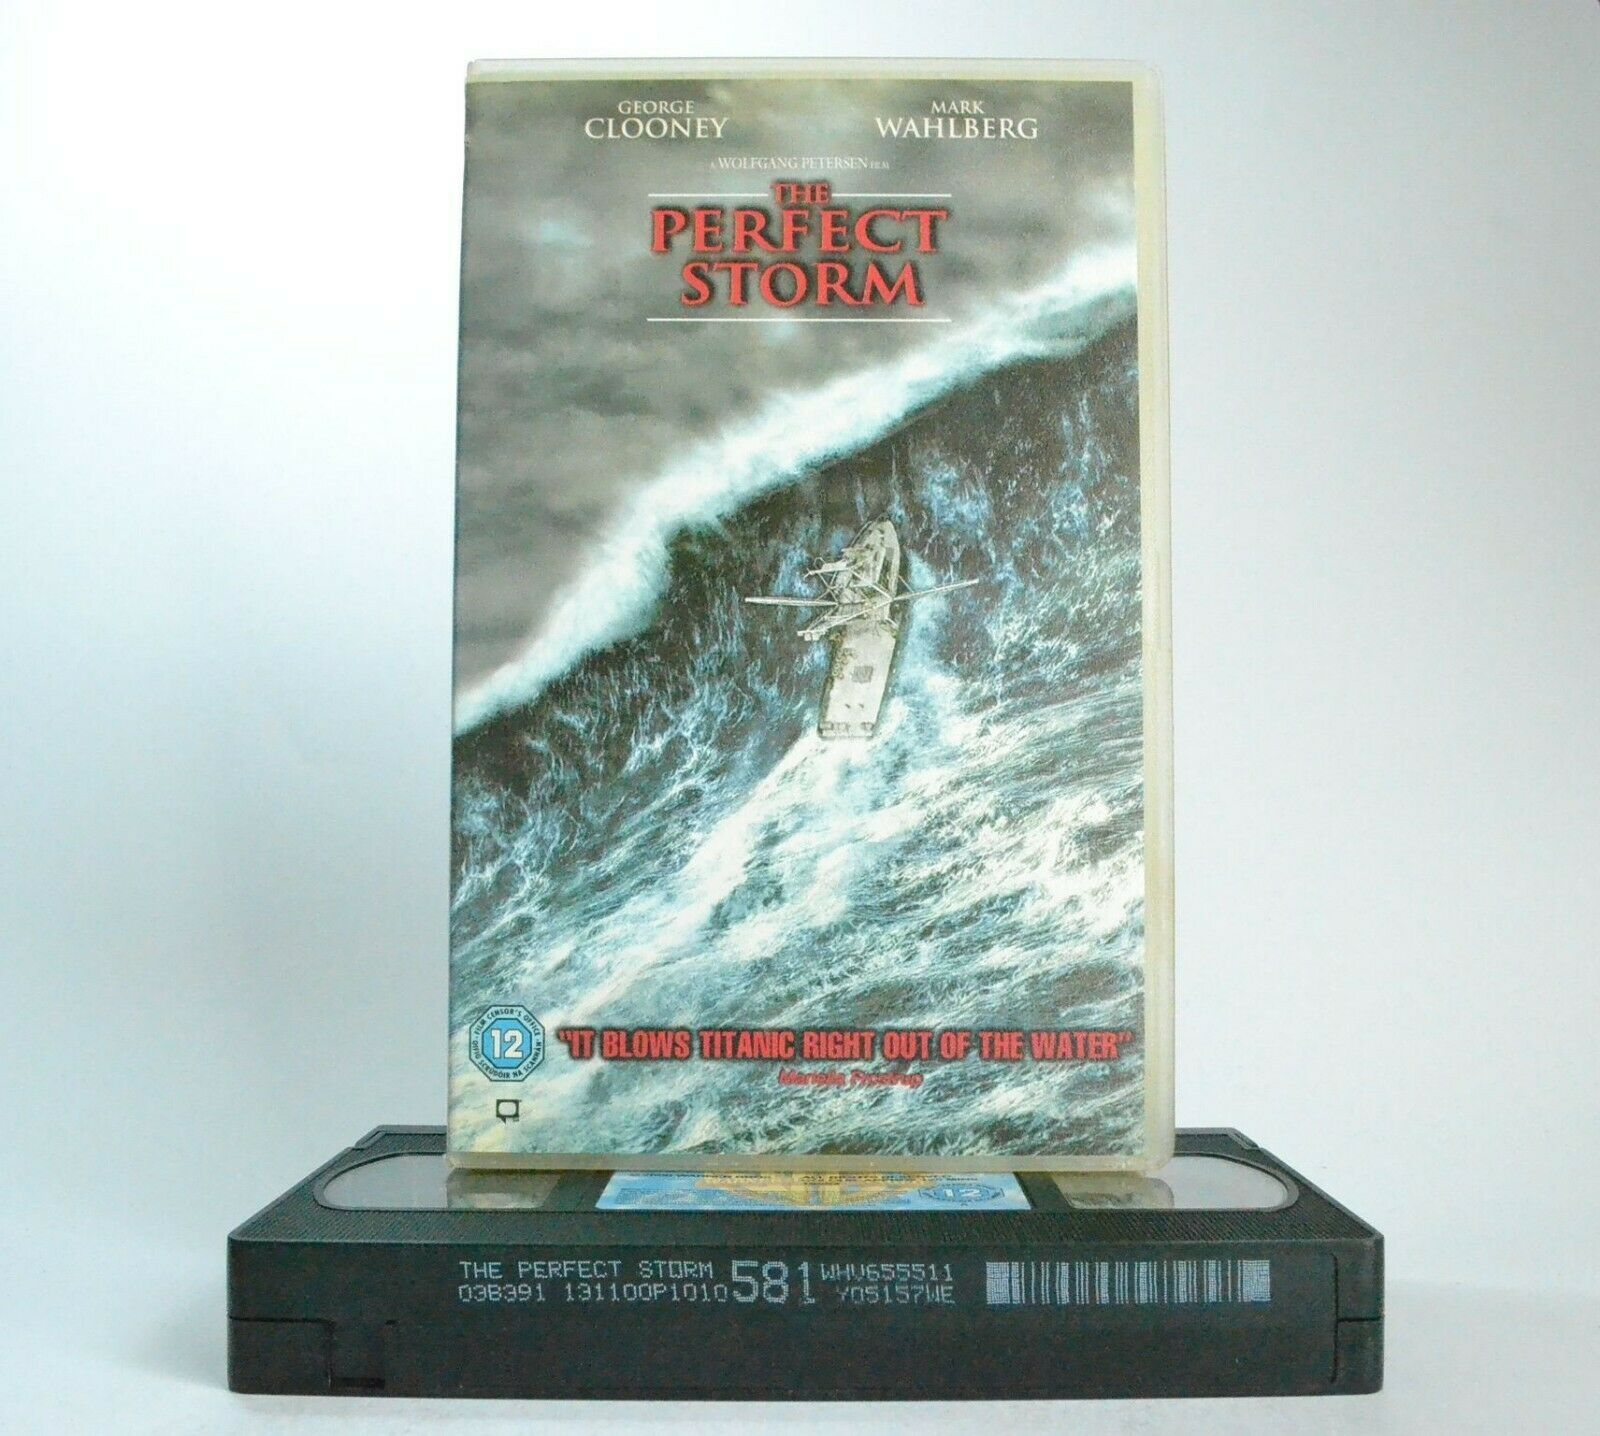 The Perfect Storm: Based On True Story - Disaster Drama (2000)- G.Clooney - VHS